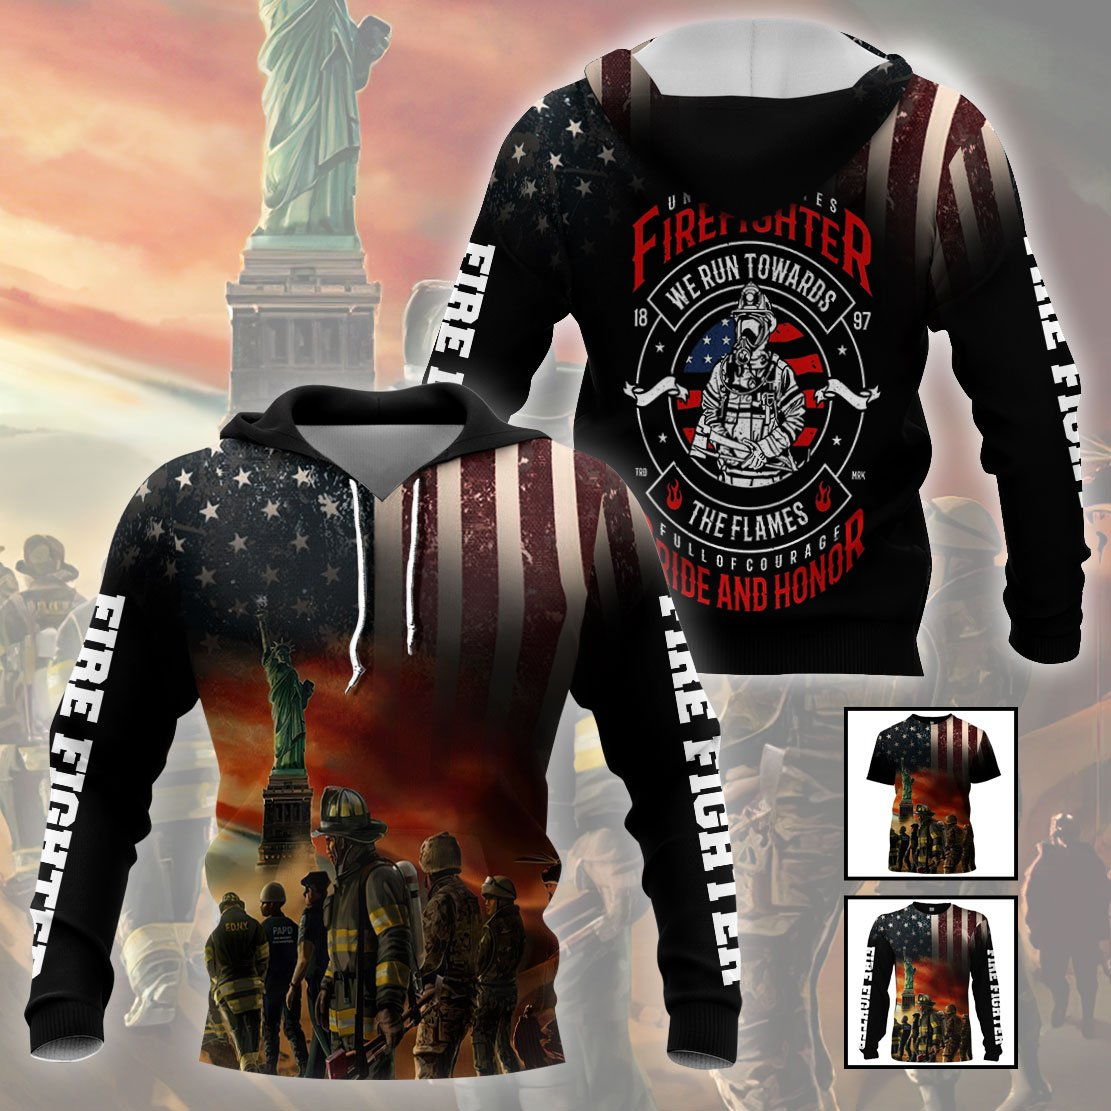 3D Firefighter Apparels  - Full of Courage - 4zOutfitters Merchandise